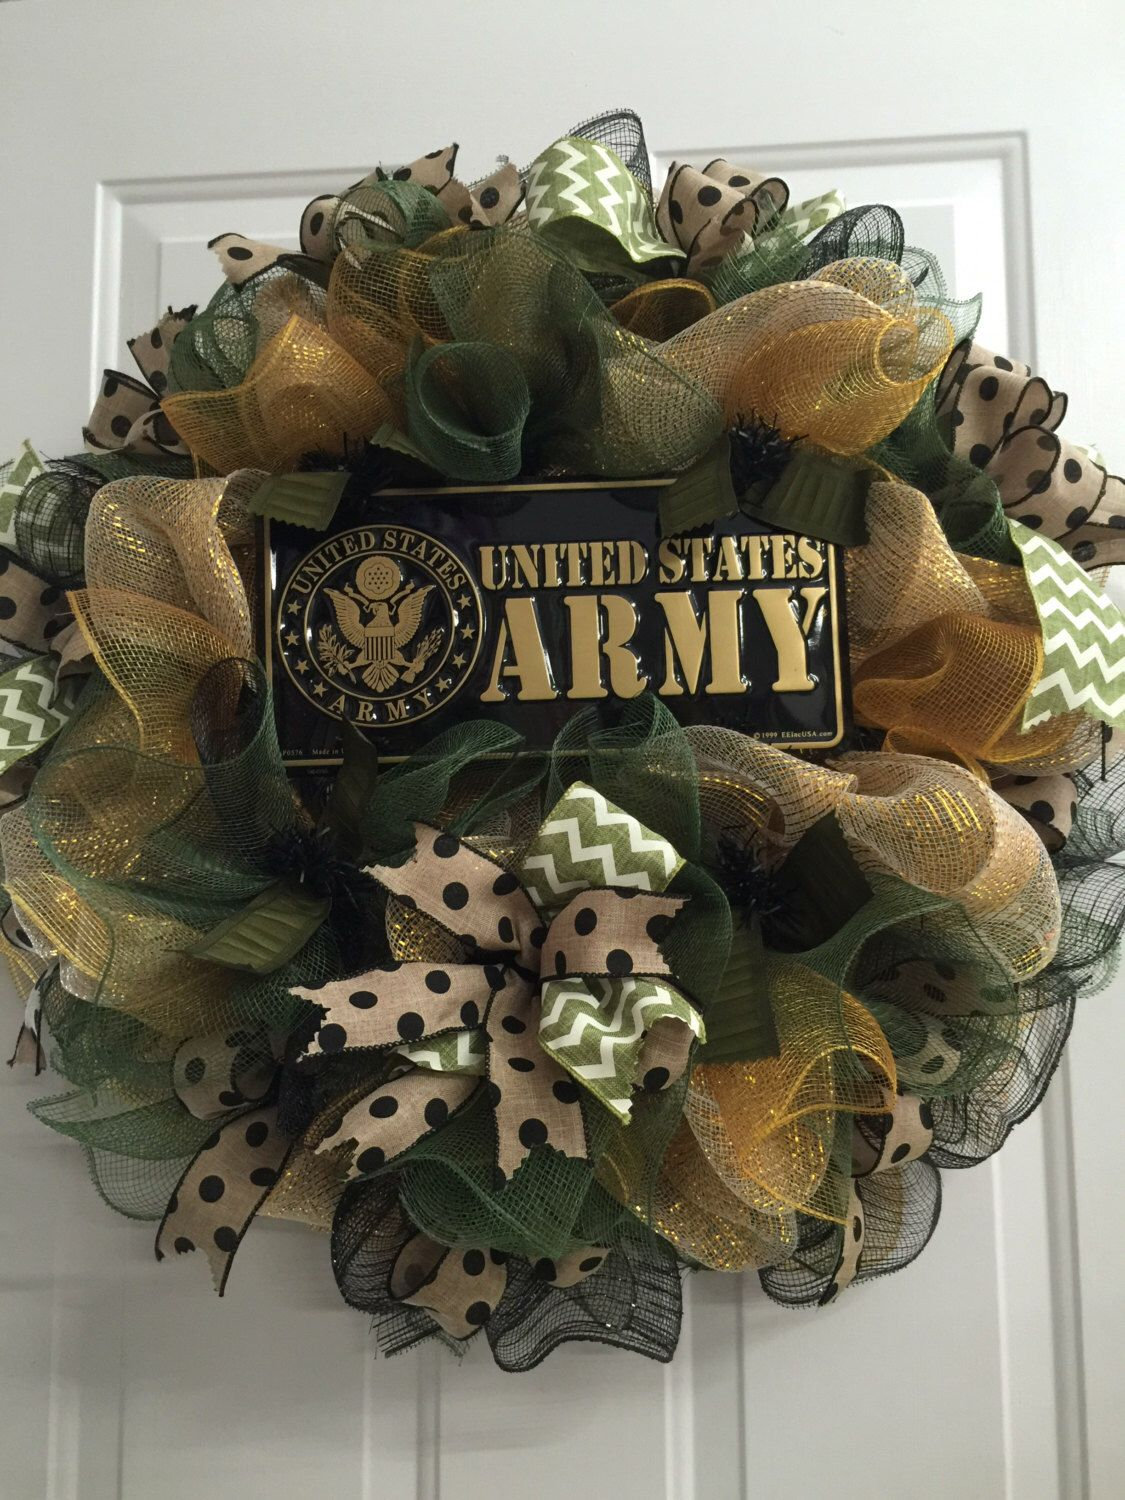 Pin By Sassy Doors On My Sassy Doors Designs Military